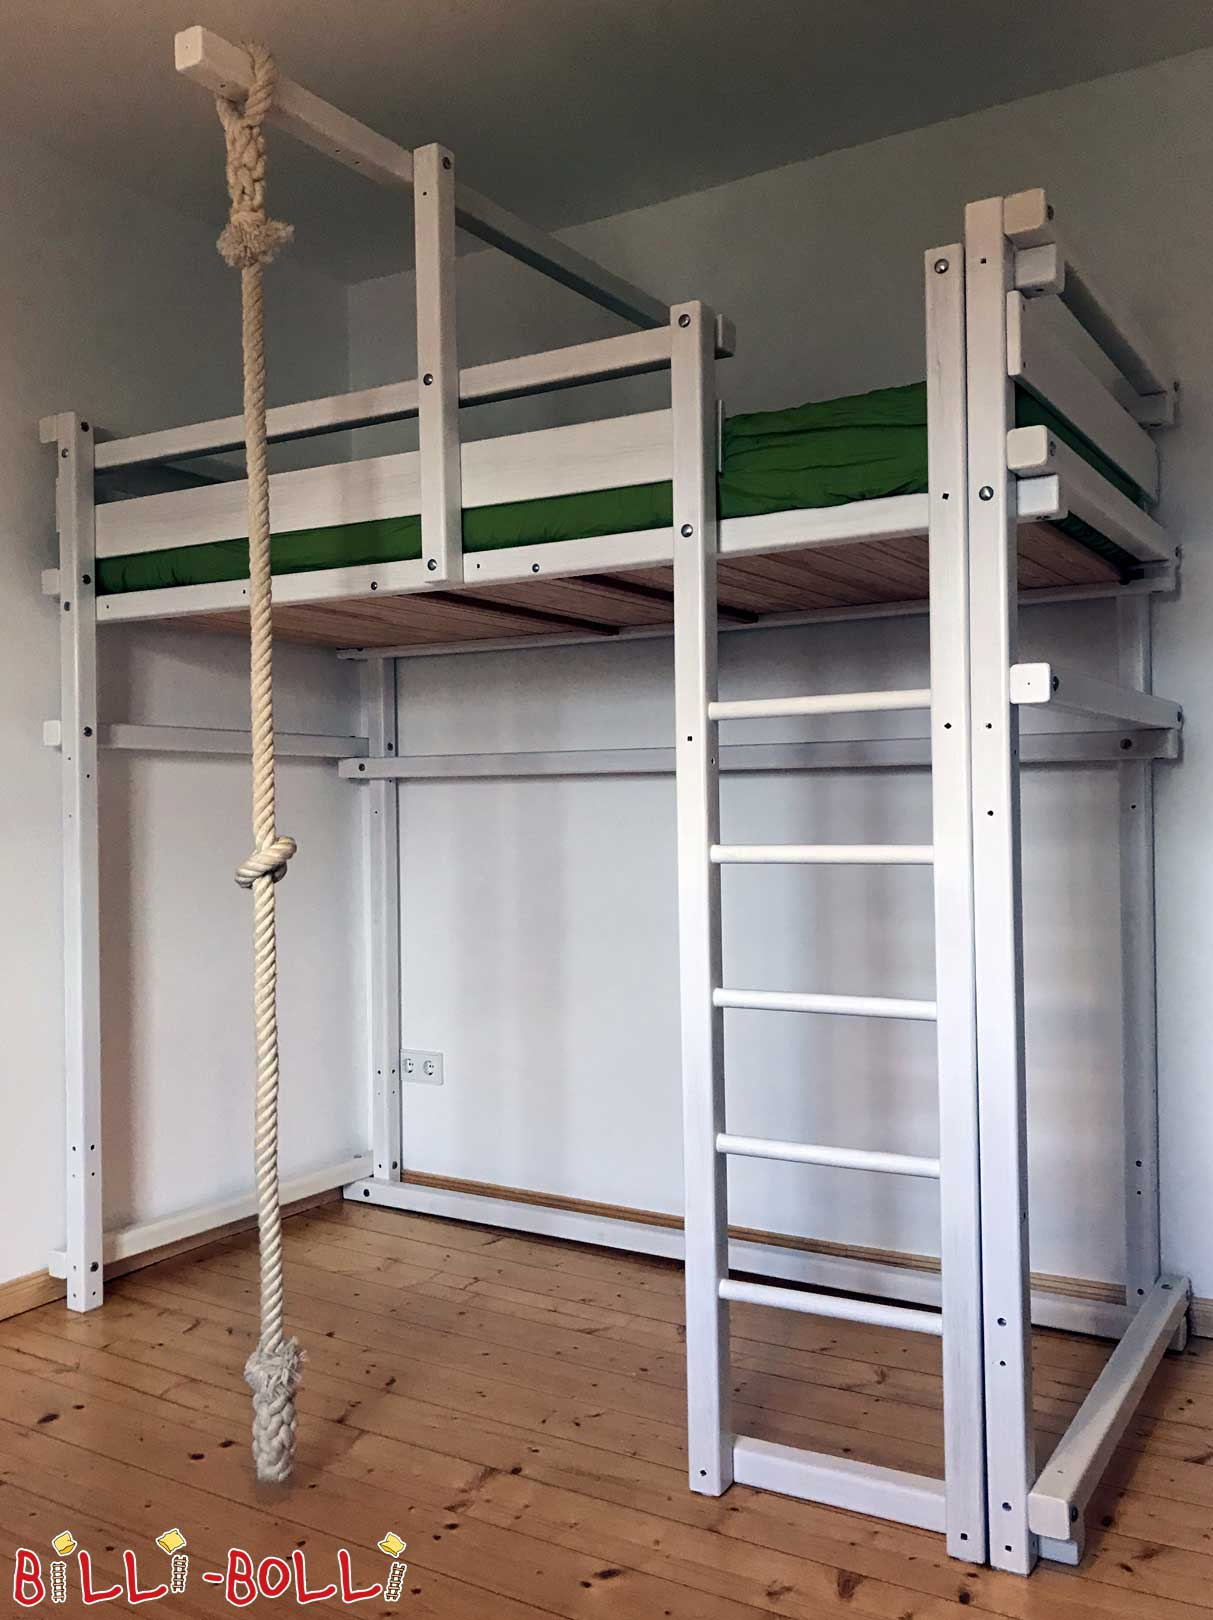 Gullibo High Bed (second hand loft bed)